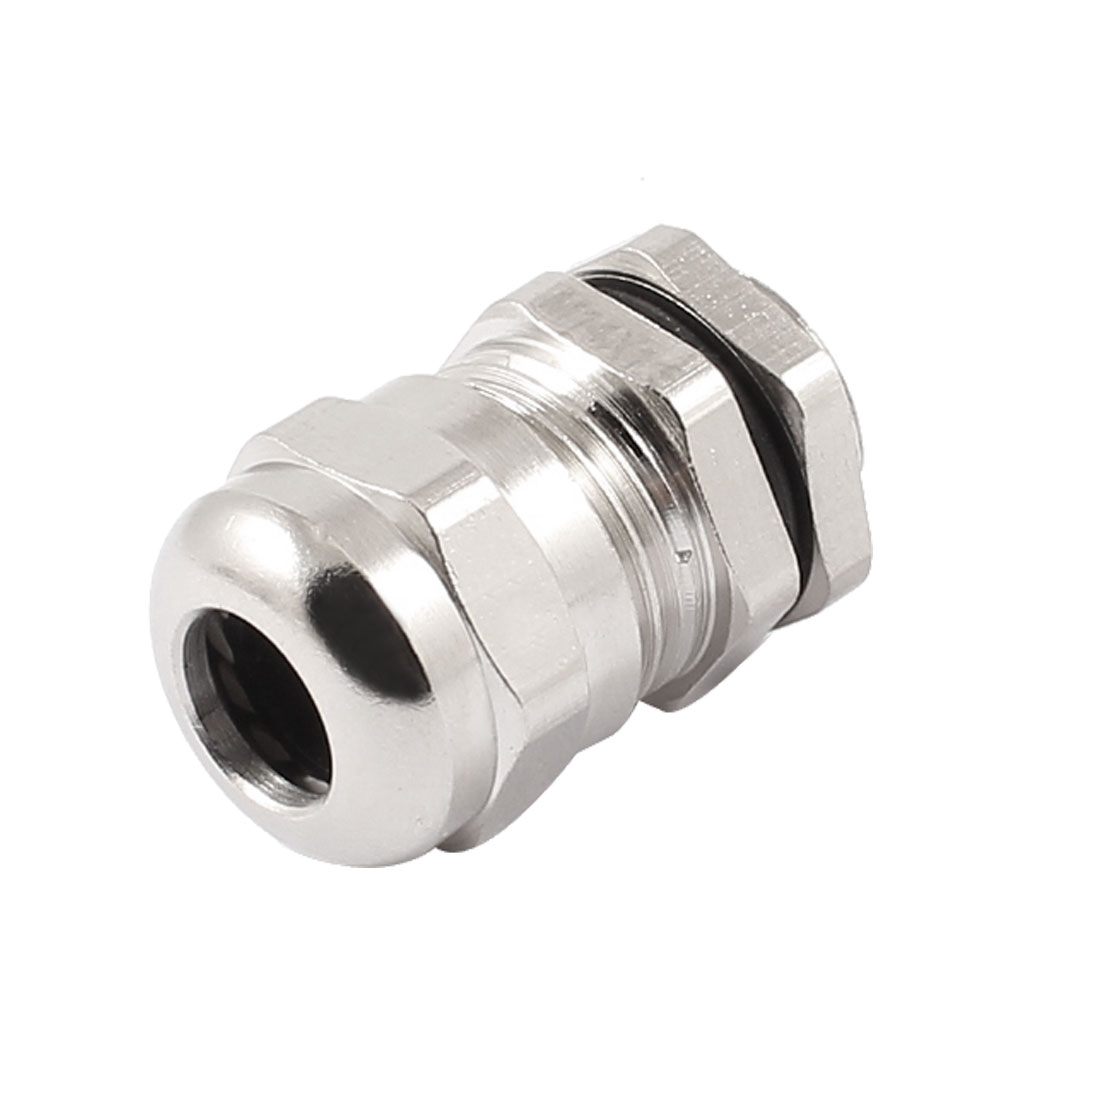 4-8mm Dia Wire 16mm OD Thread Metal Waterproof Connector Fastener Cable Gland